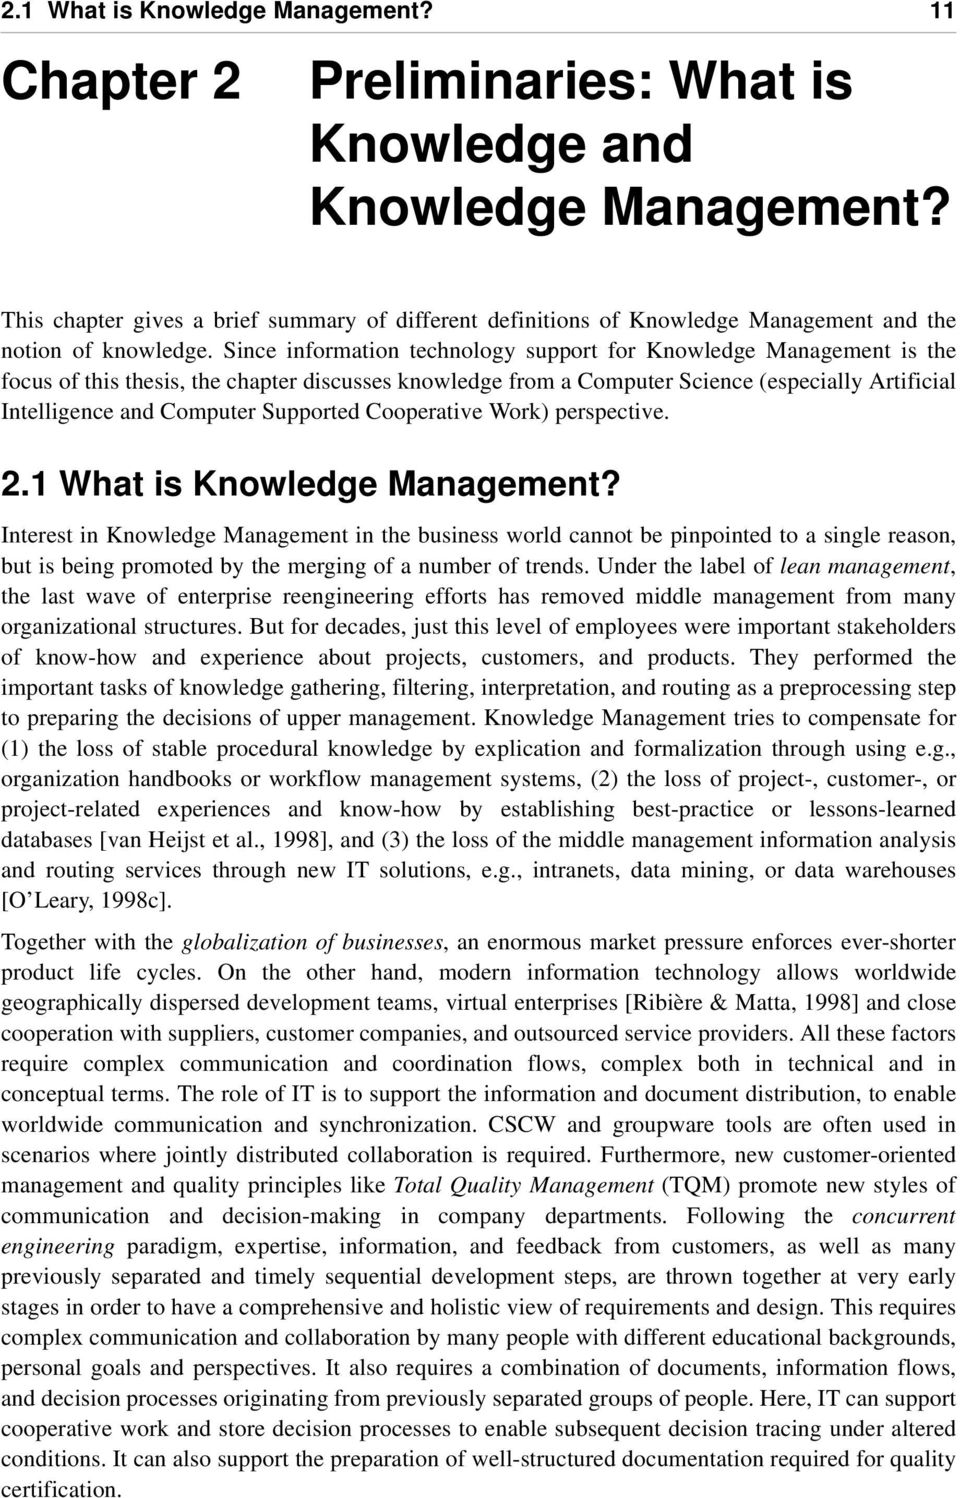 Since information technology support for Knowledge Management is the focus of this thesis, the chapter discusses knowledge from a Computer Science (especially Artificial Intelligence and Computer